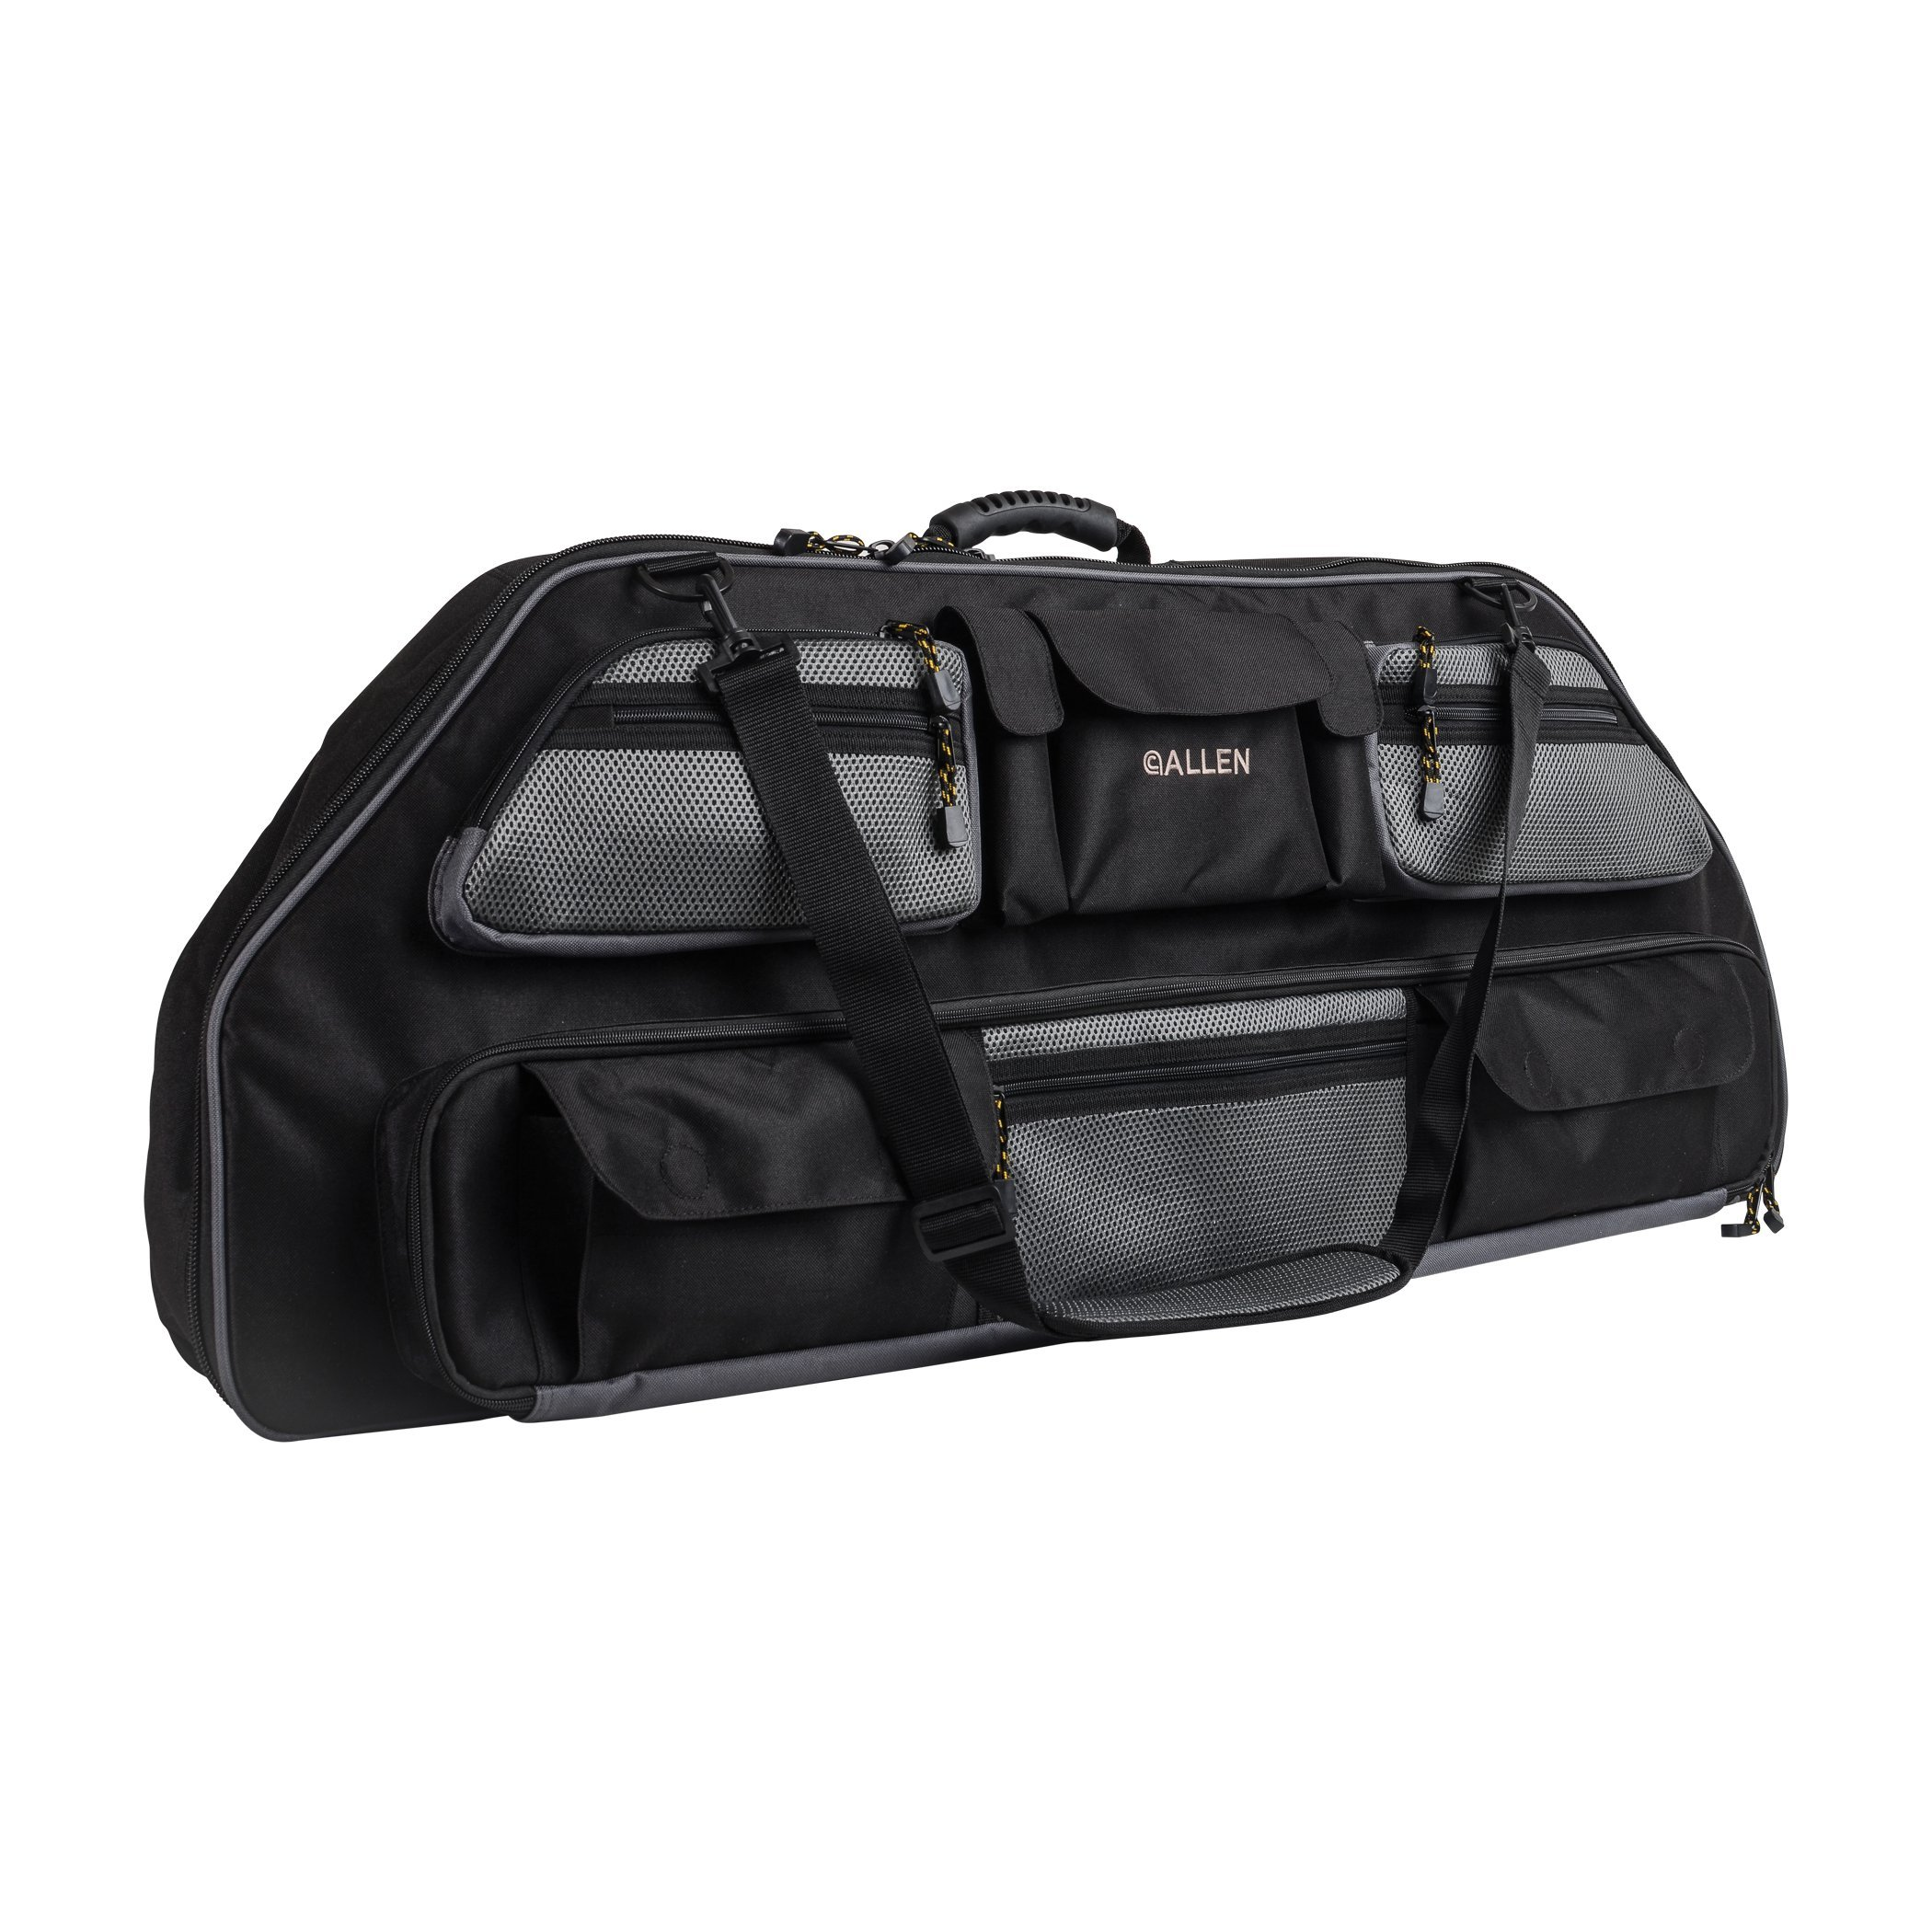 Compound Bow Case, Black Gear Fit X Fits Compound Bows up to 35'' Axle to Axle